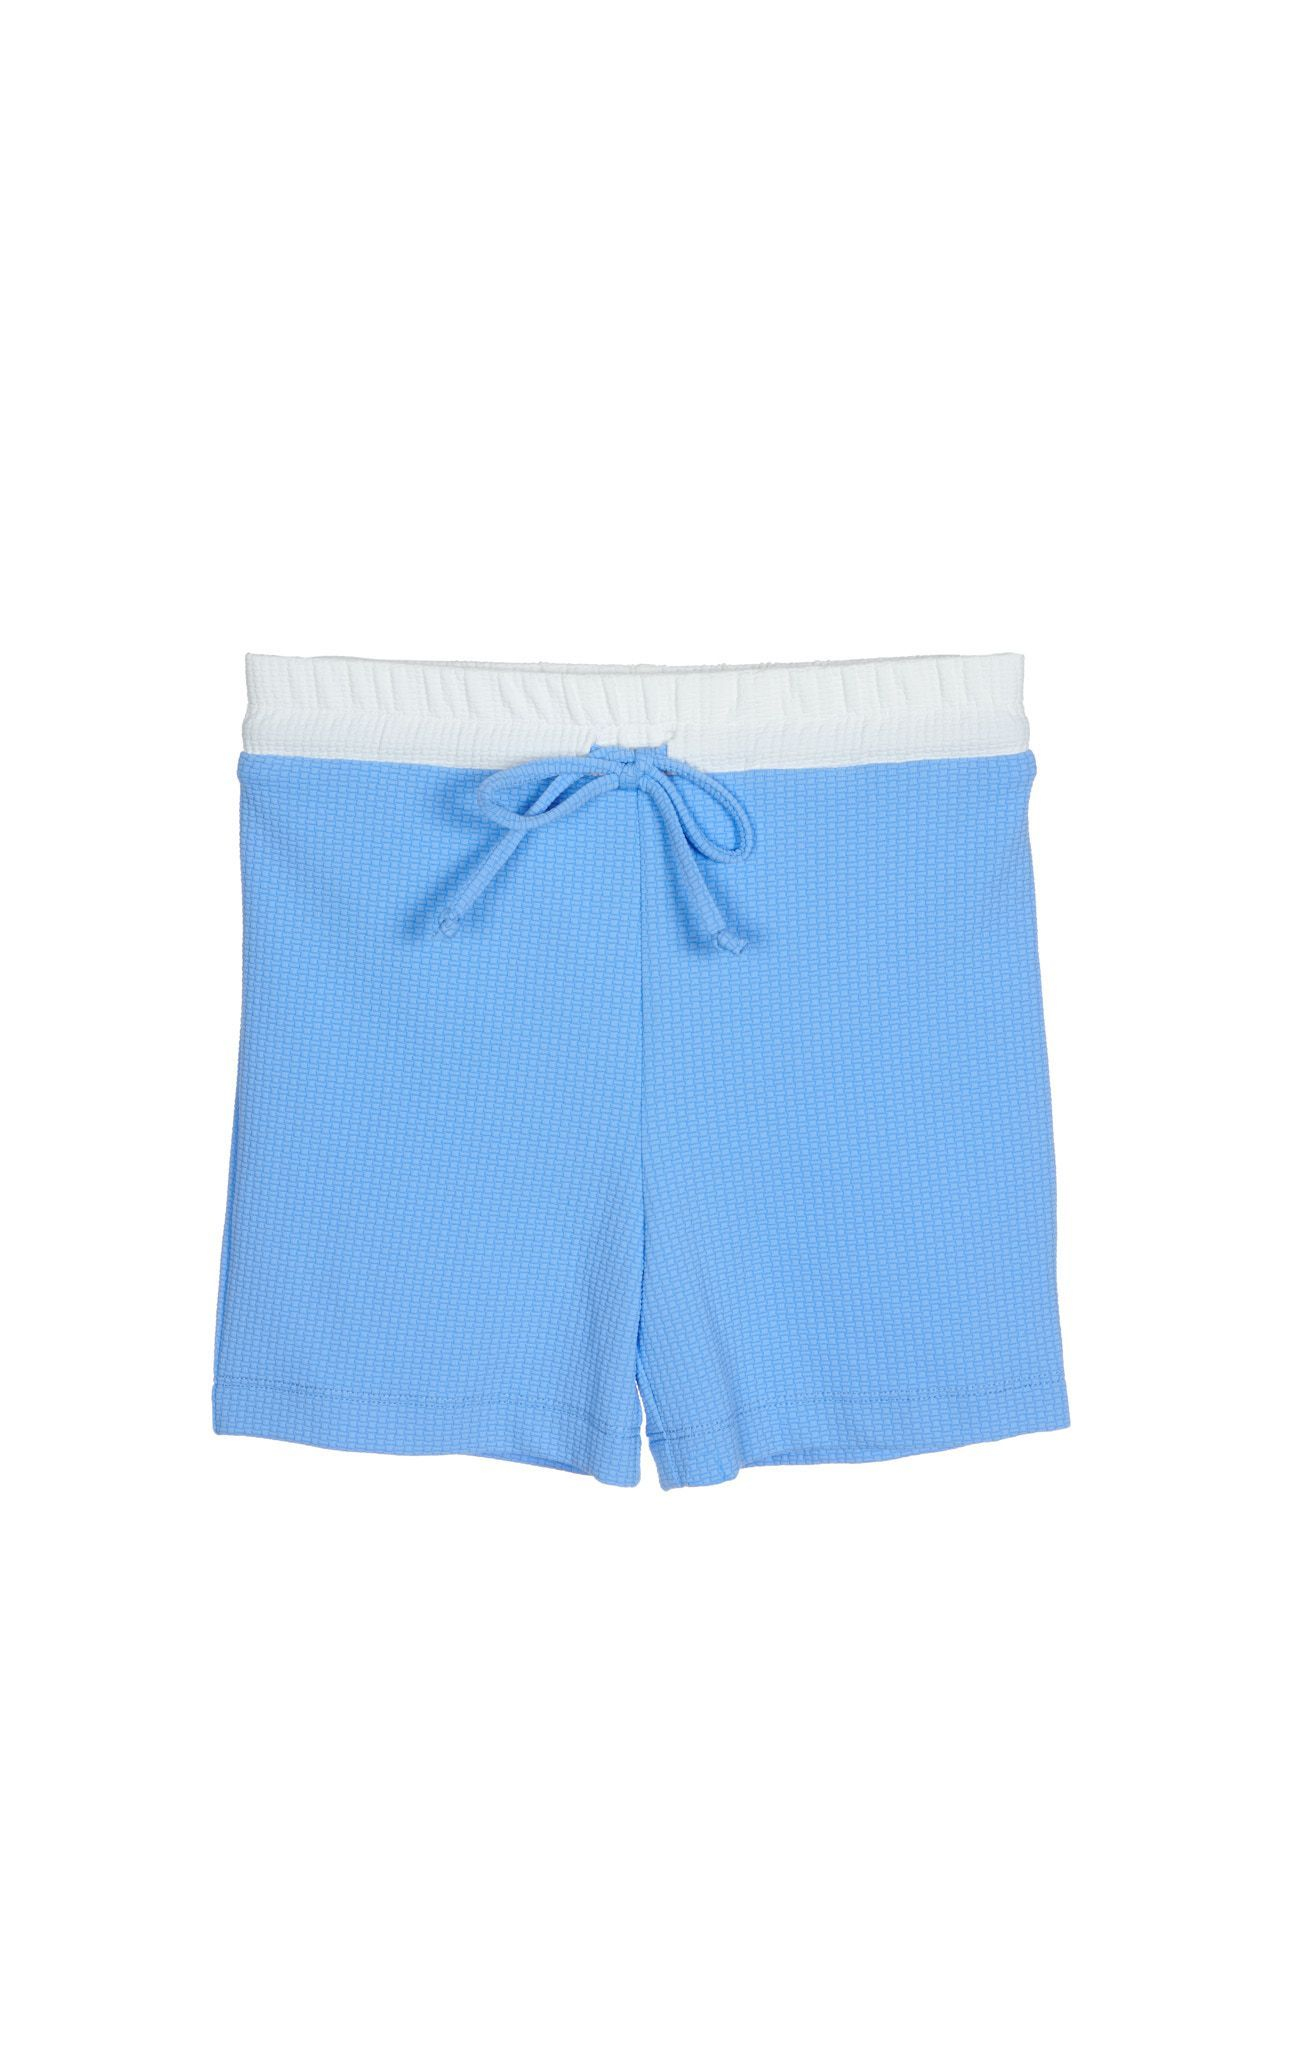 Bumby Boy Short in Adriatic Blue